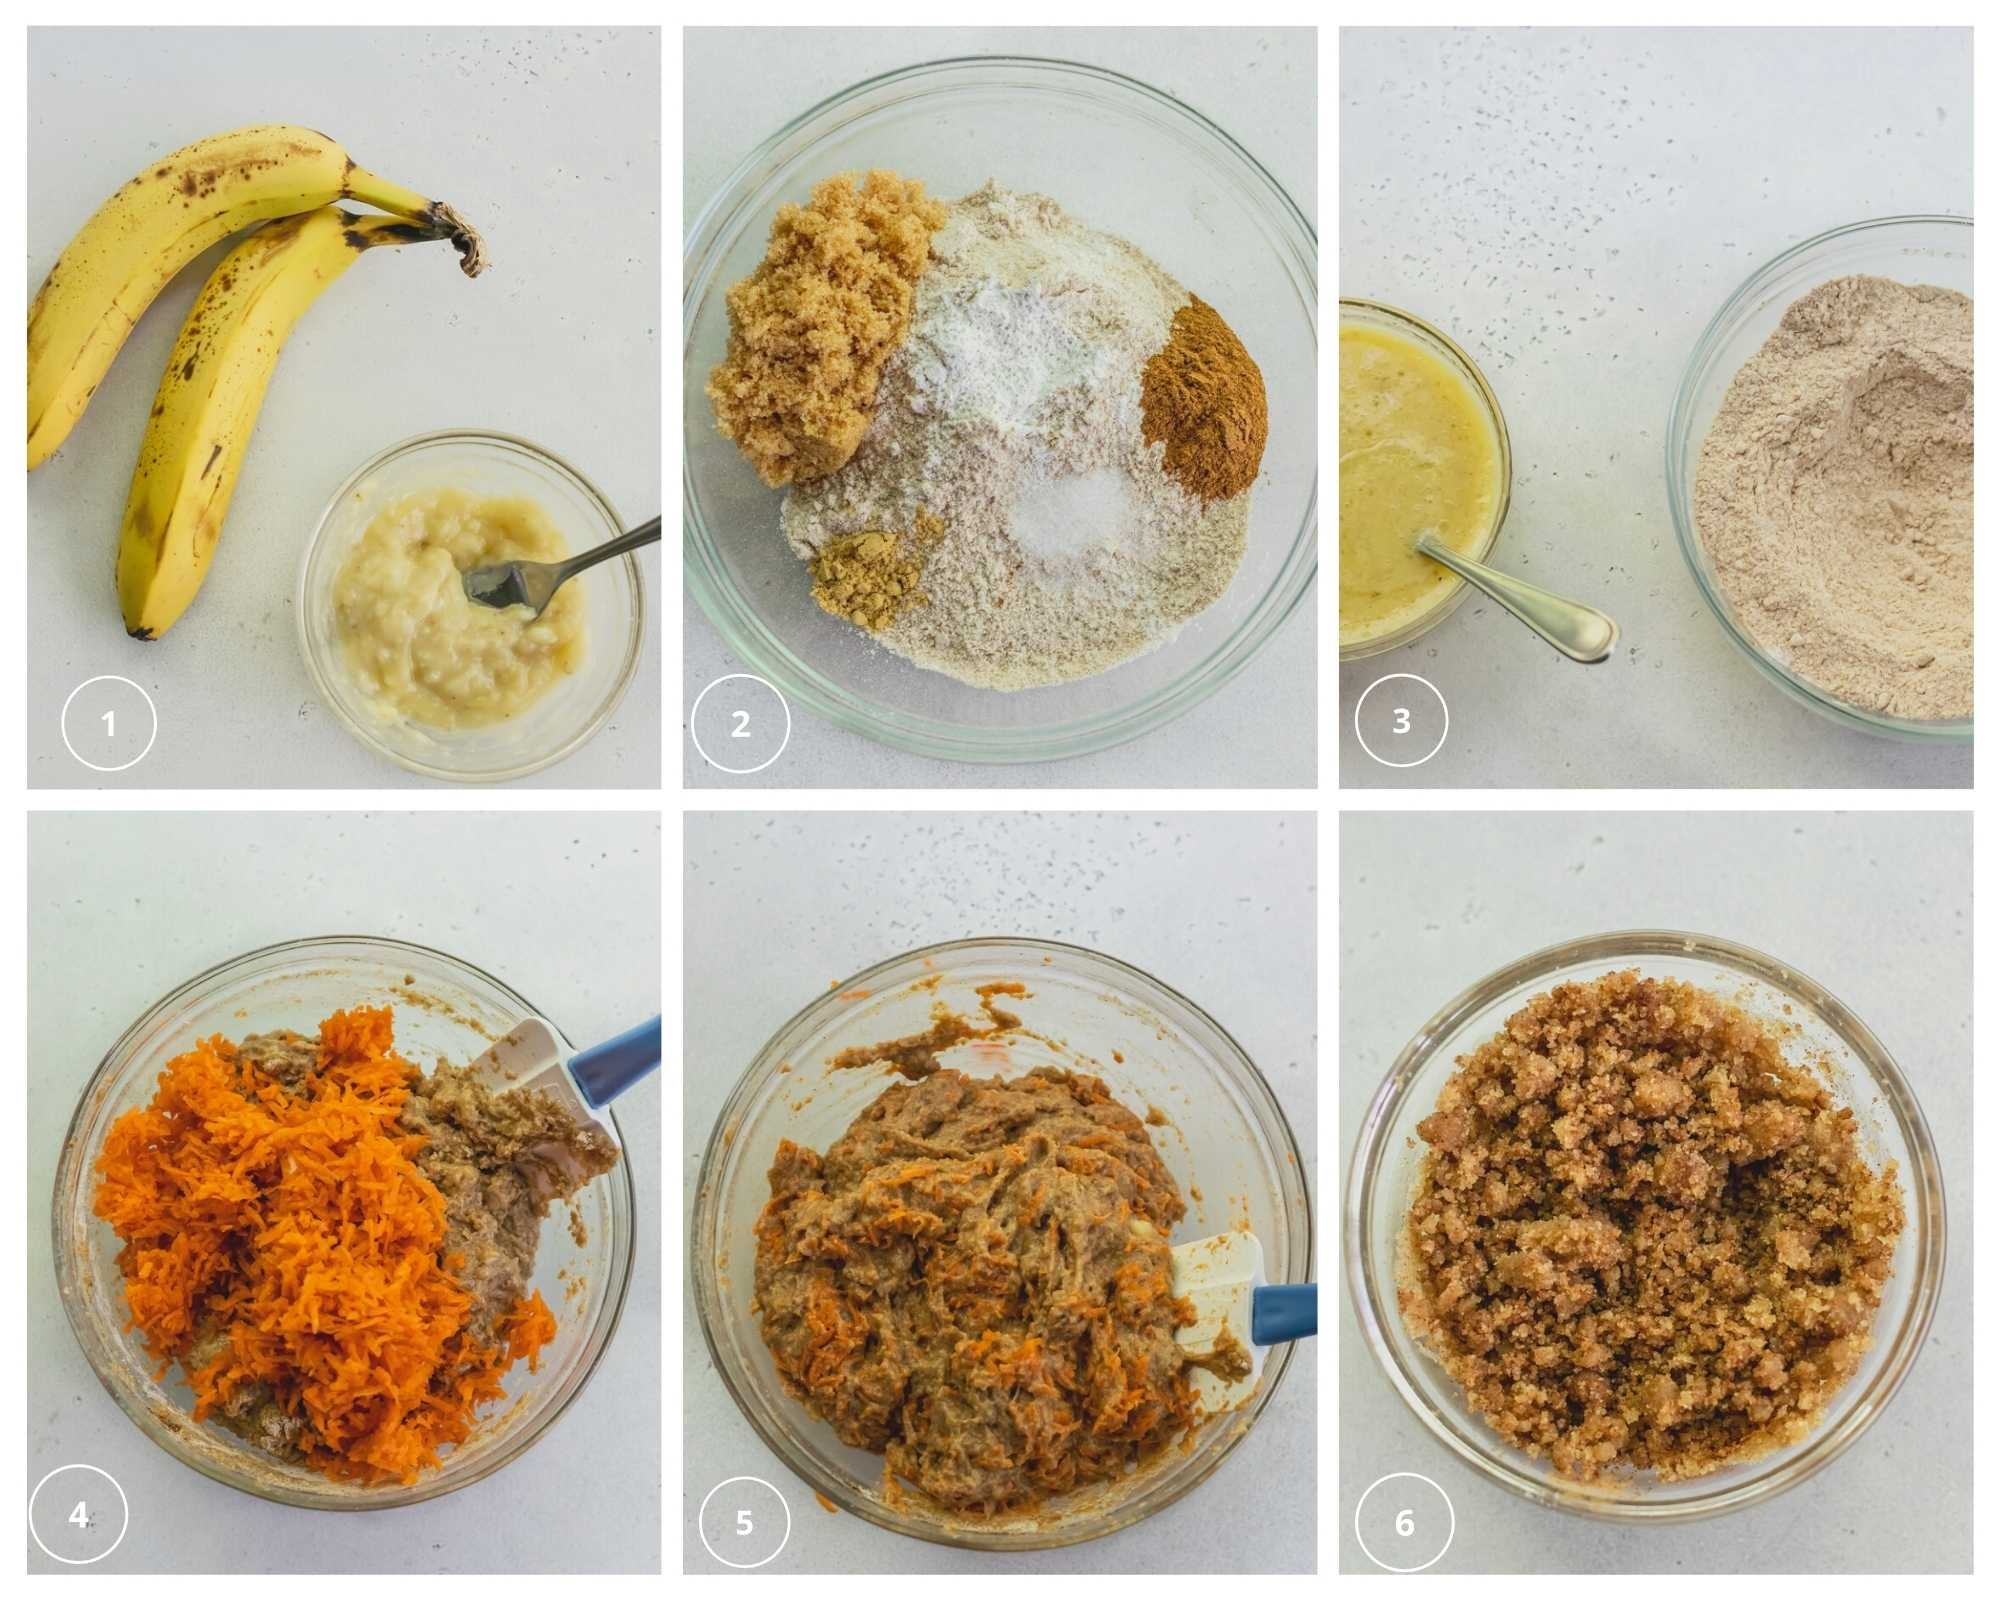 steps to make muffins with mashed bananas and grated carrots